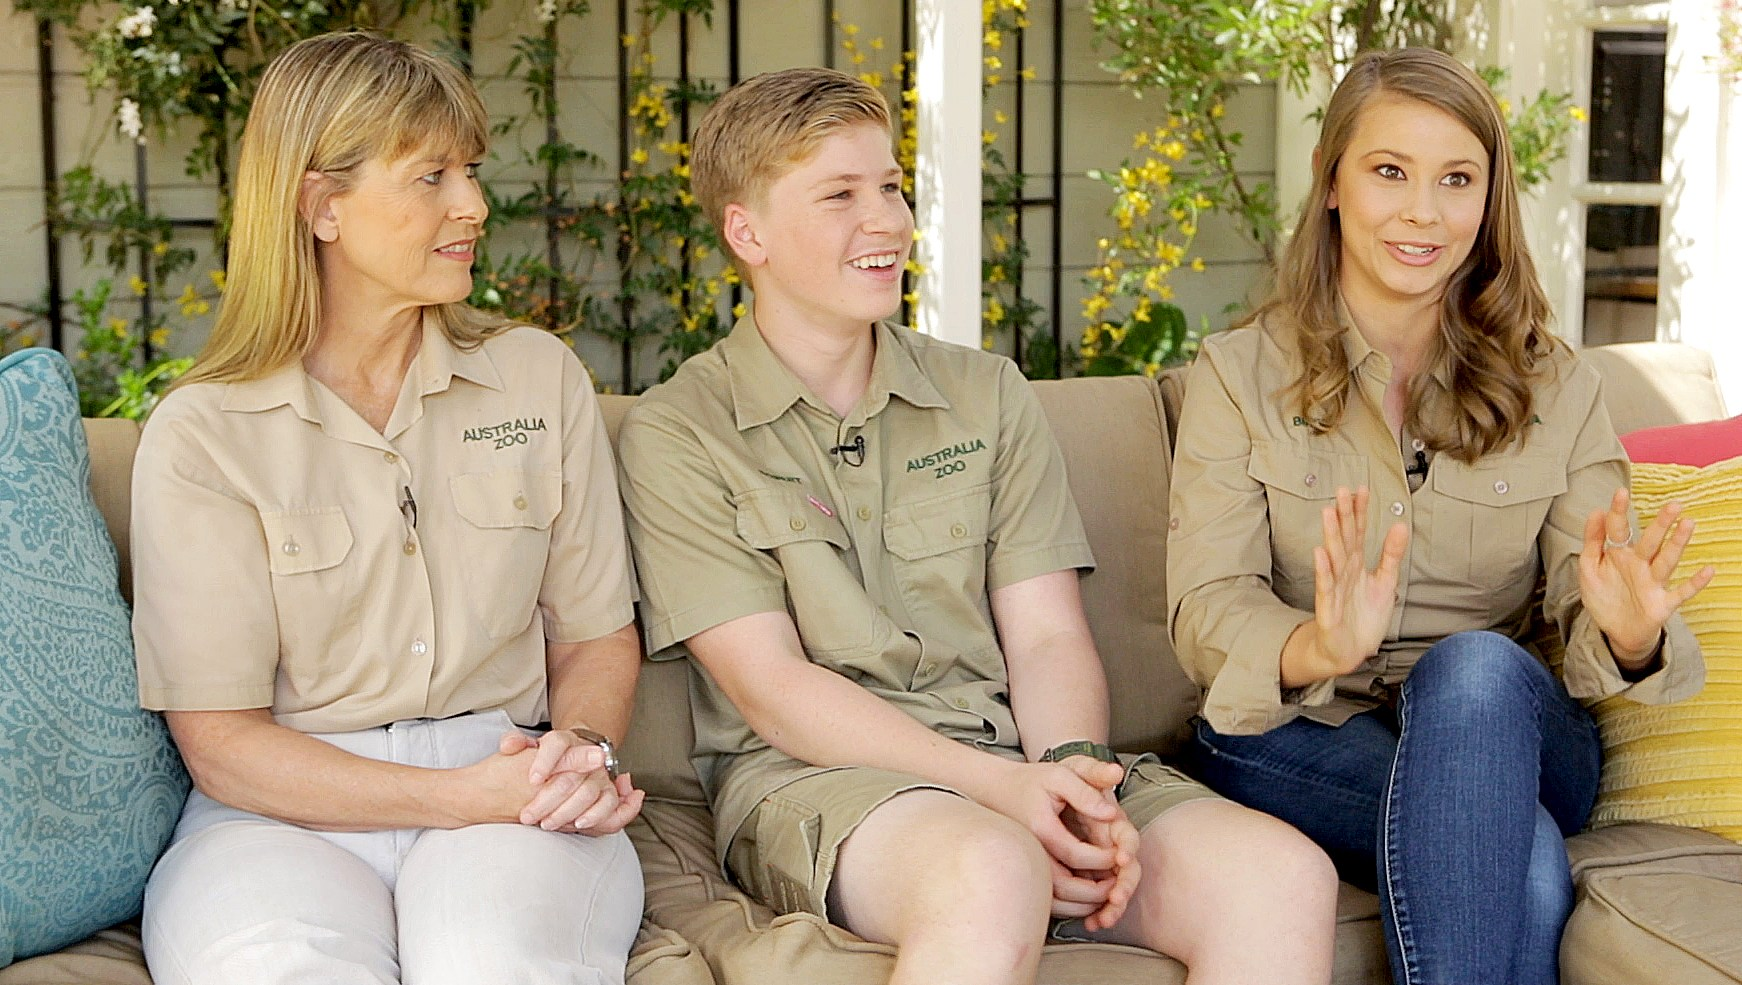 Terri, Robert, and Bindi Irwin